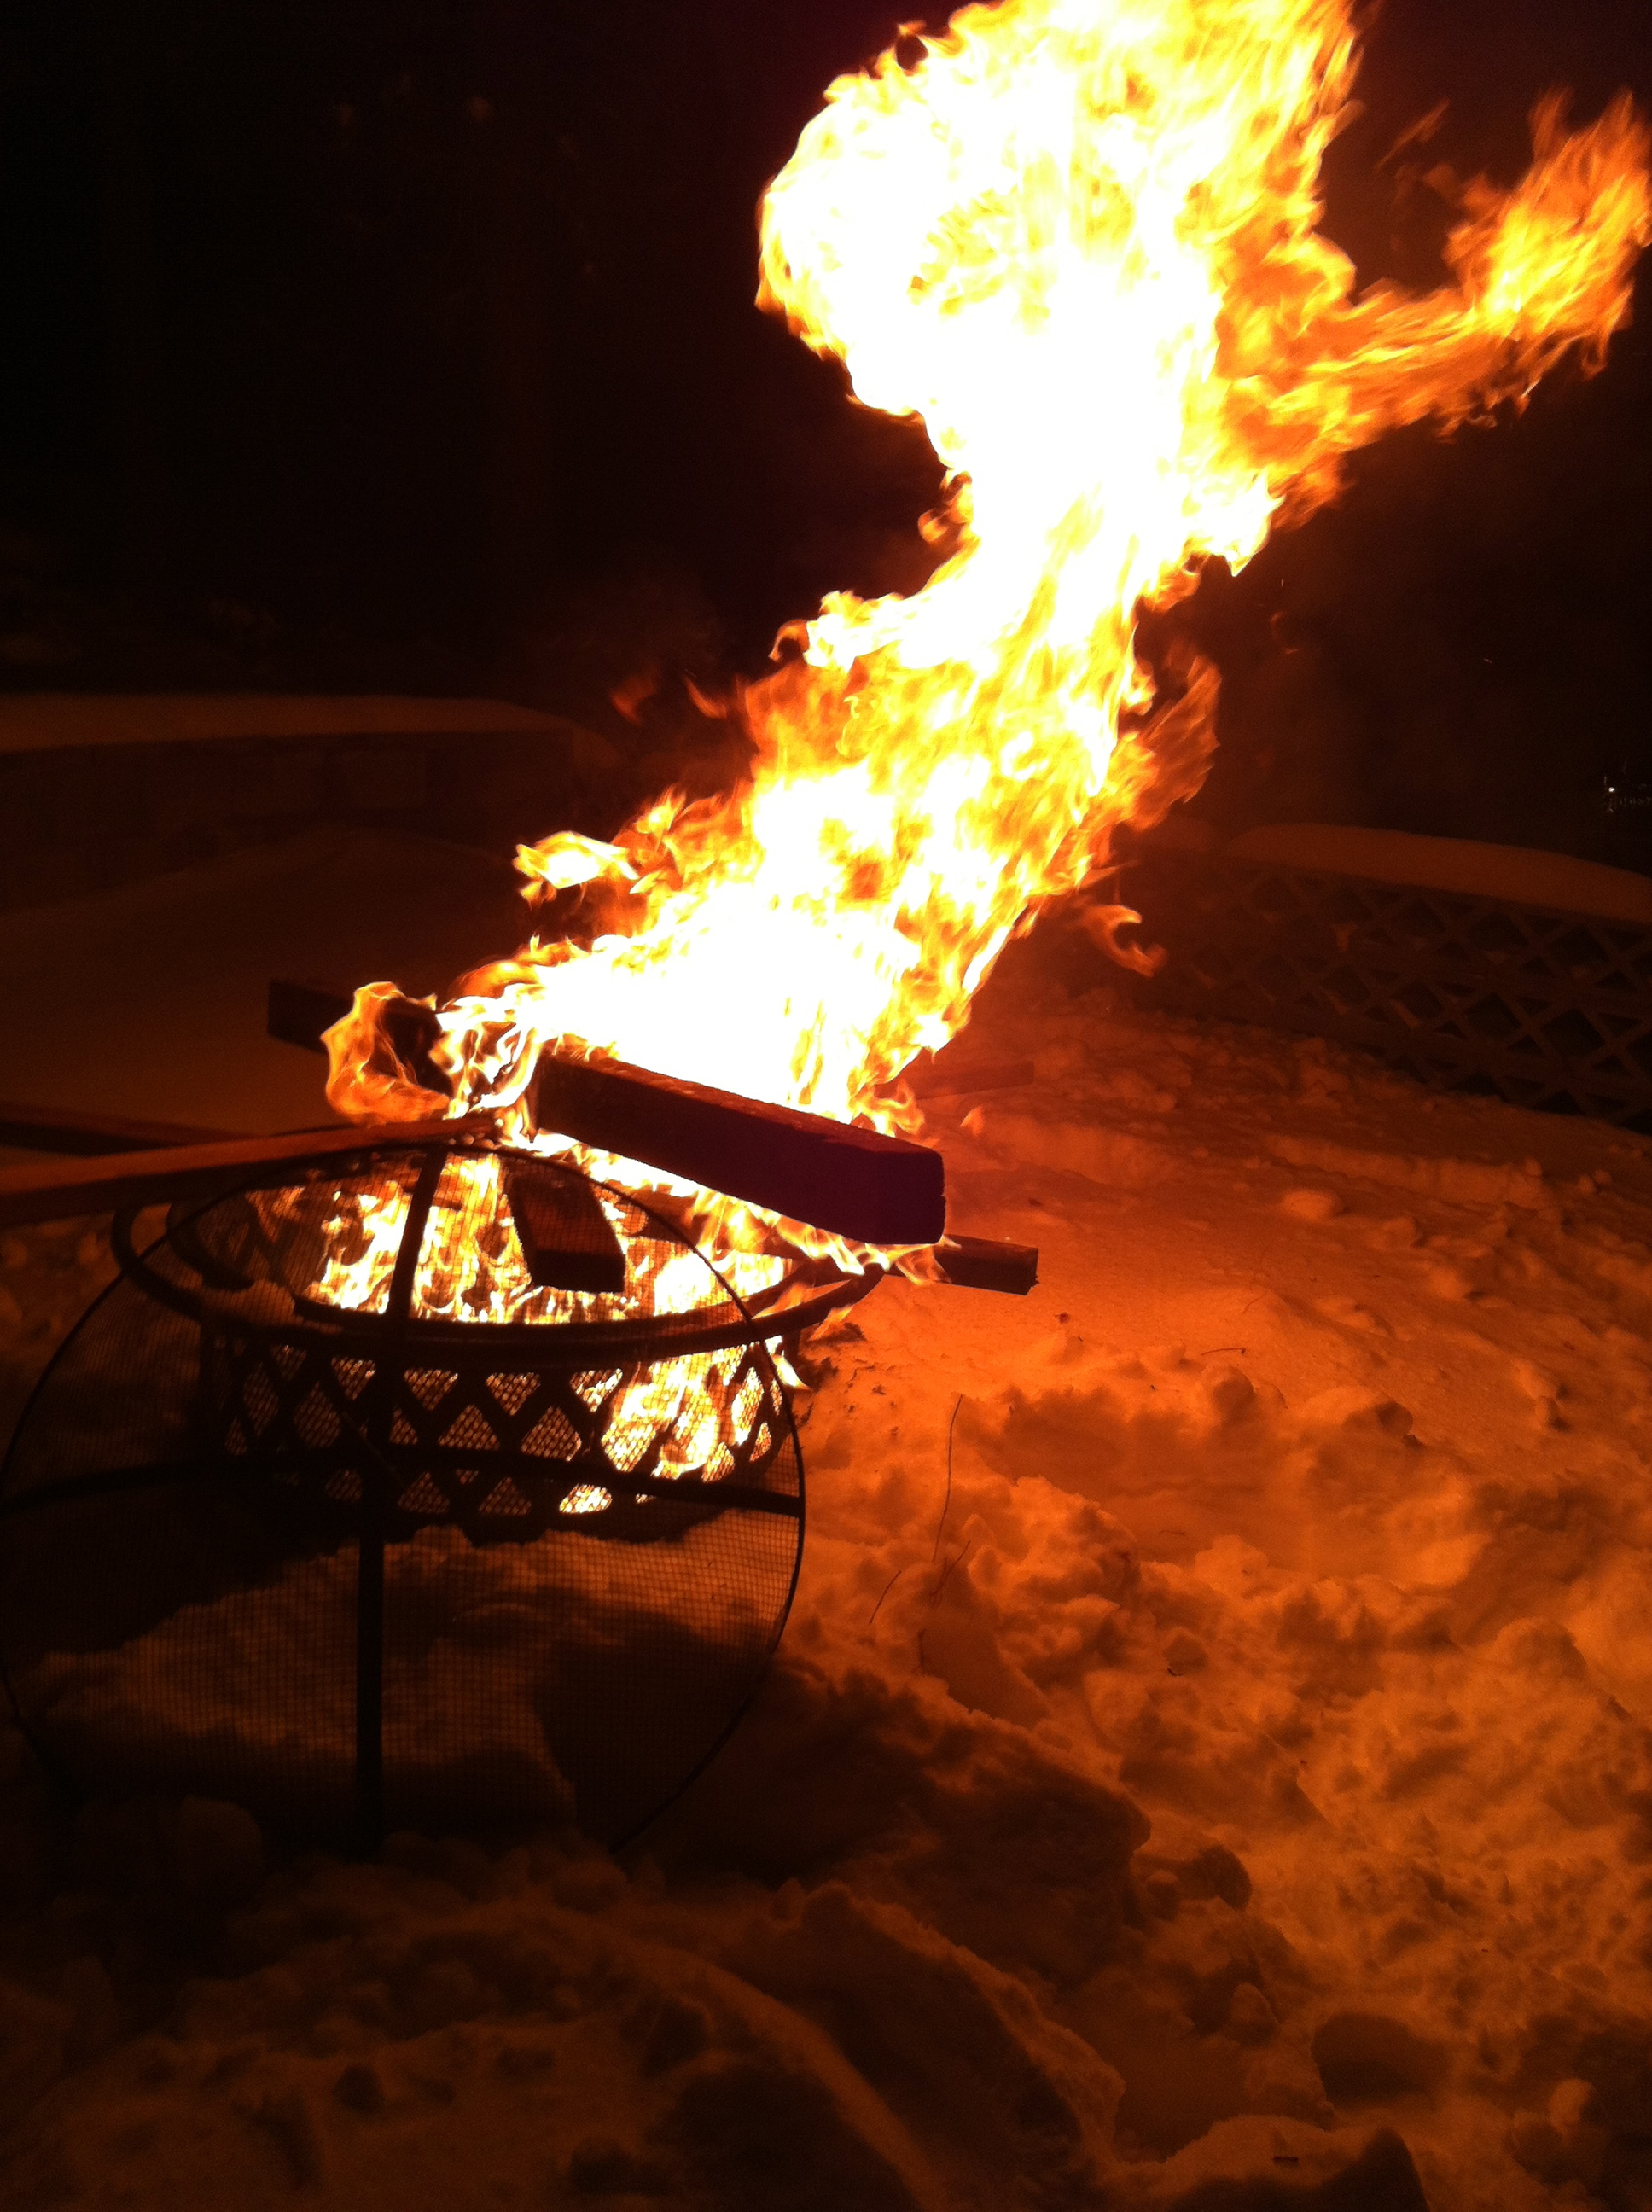 Fun with fire,buying off the rest of the wood!